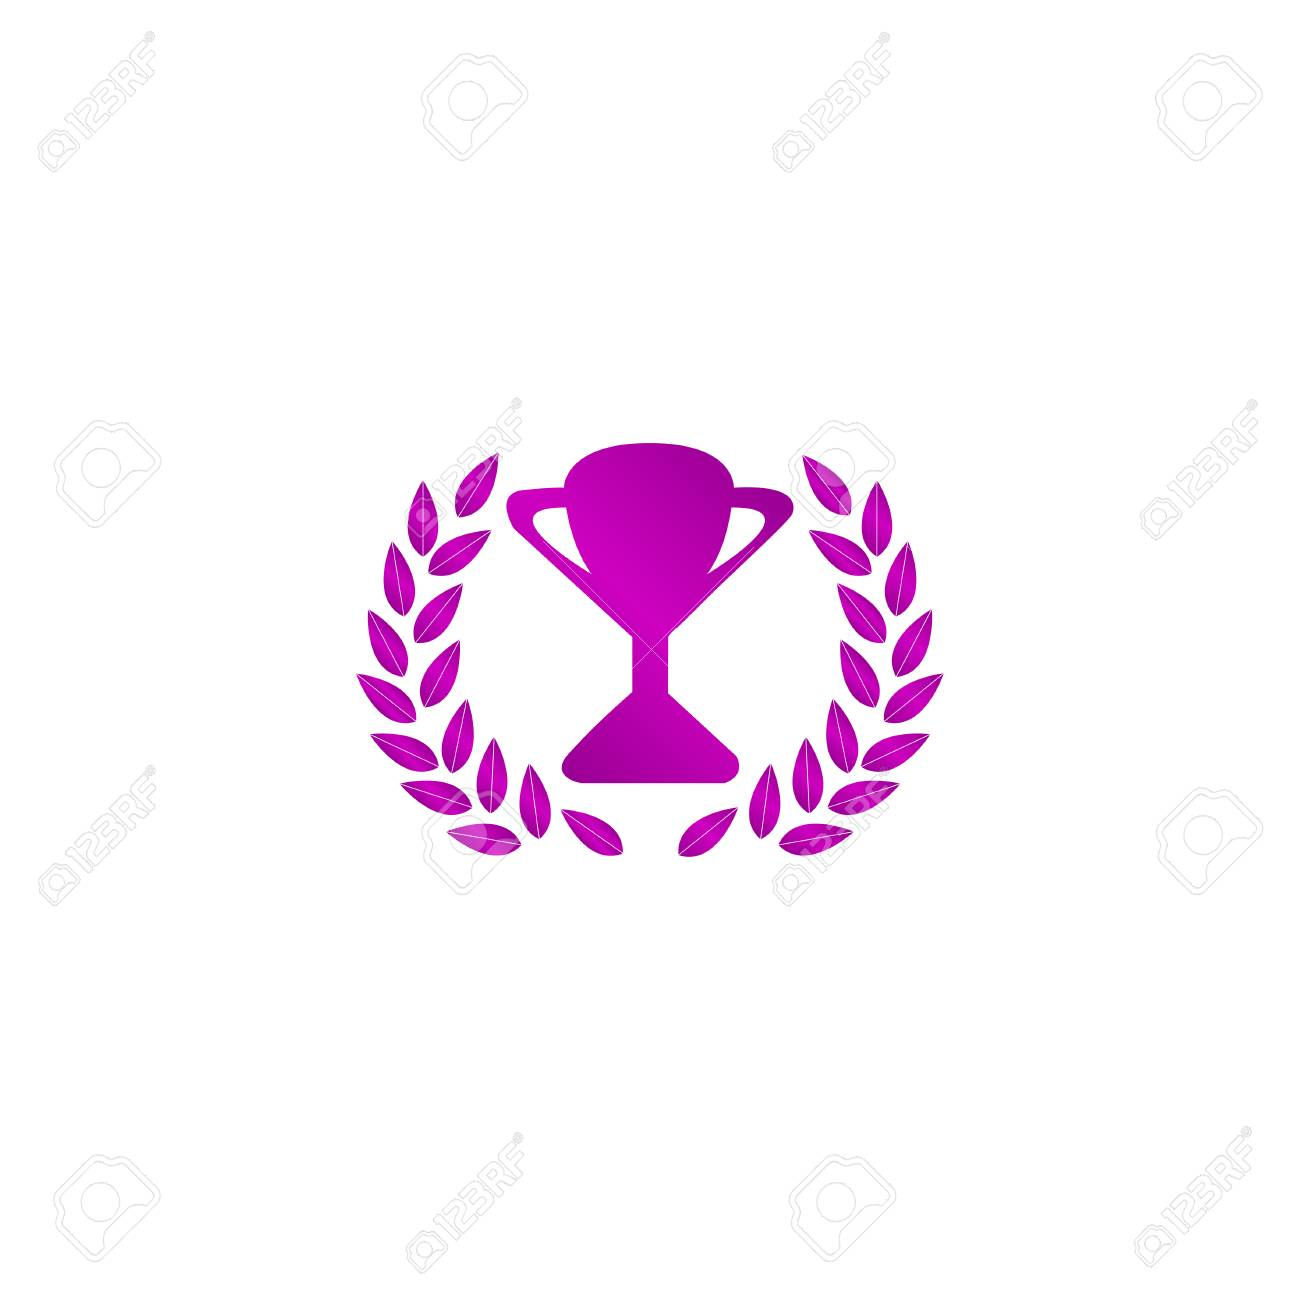 trophy and awards icon flat design style royalty free cliparts